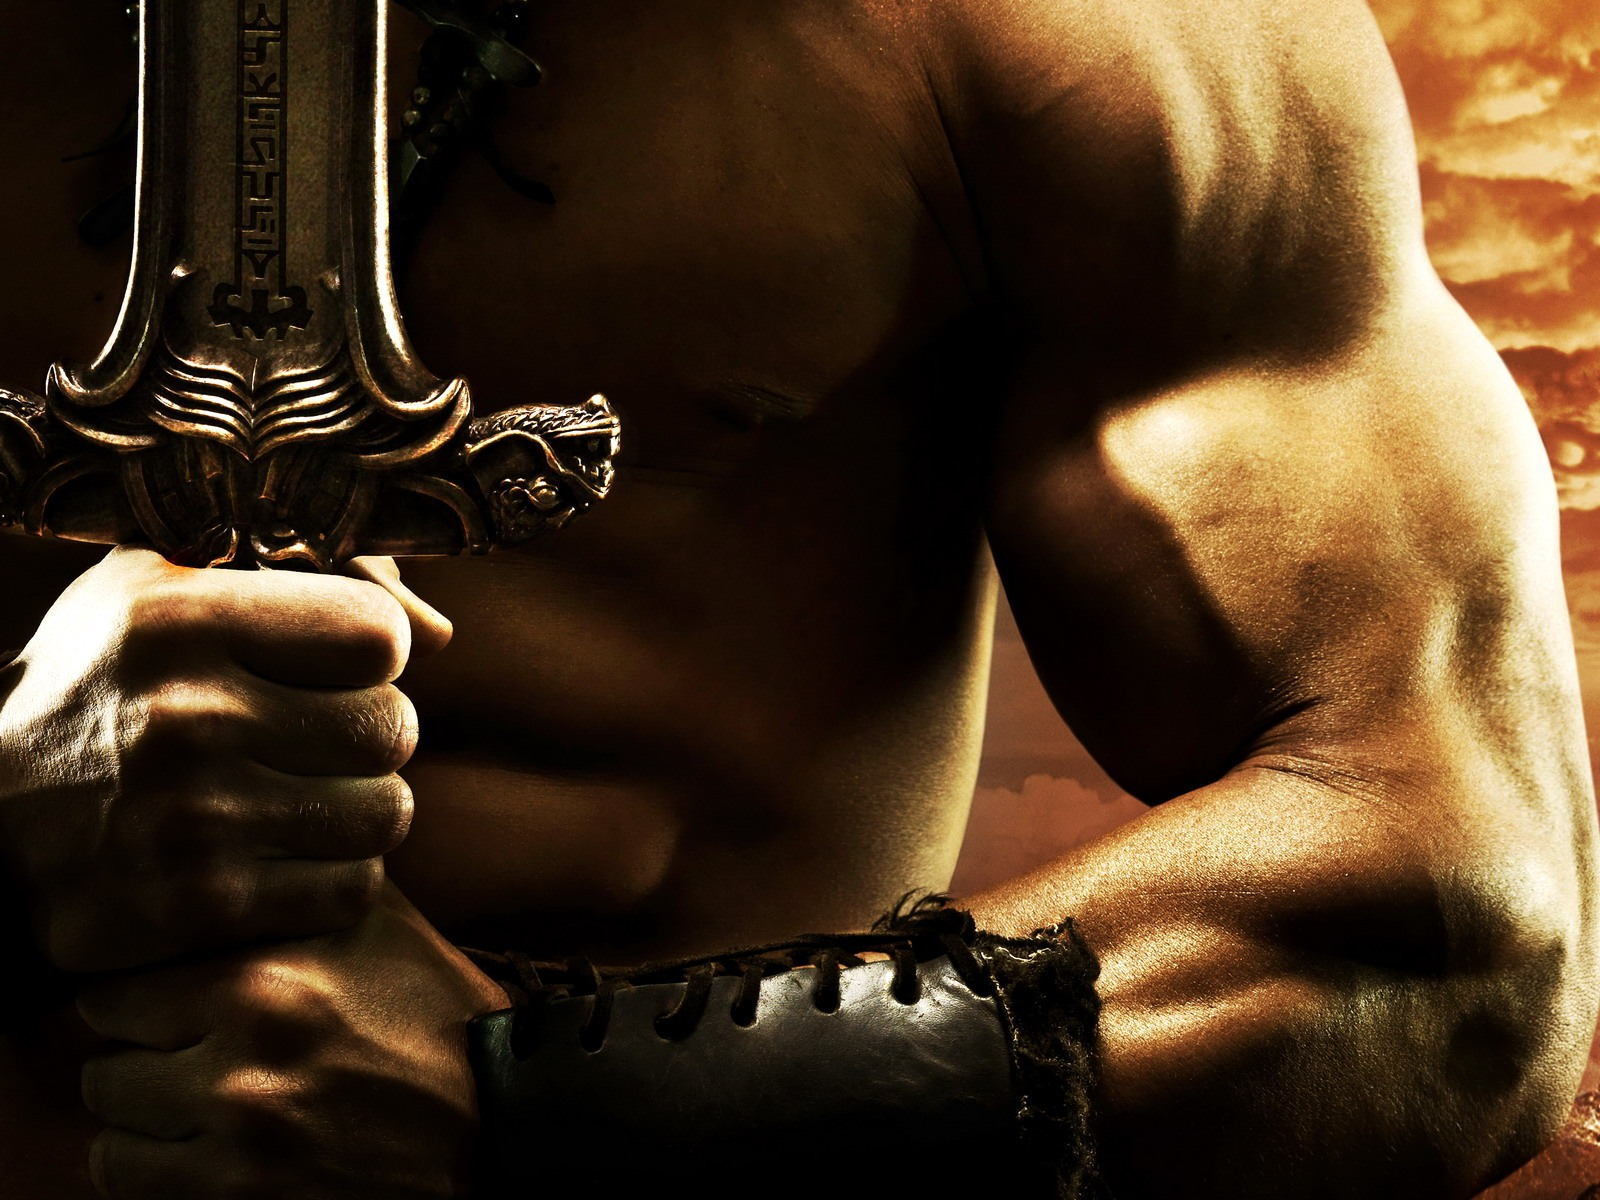 film Conan the Barbarian 2011 wallpapers and images   wallpapers 1600x1200